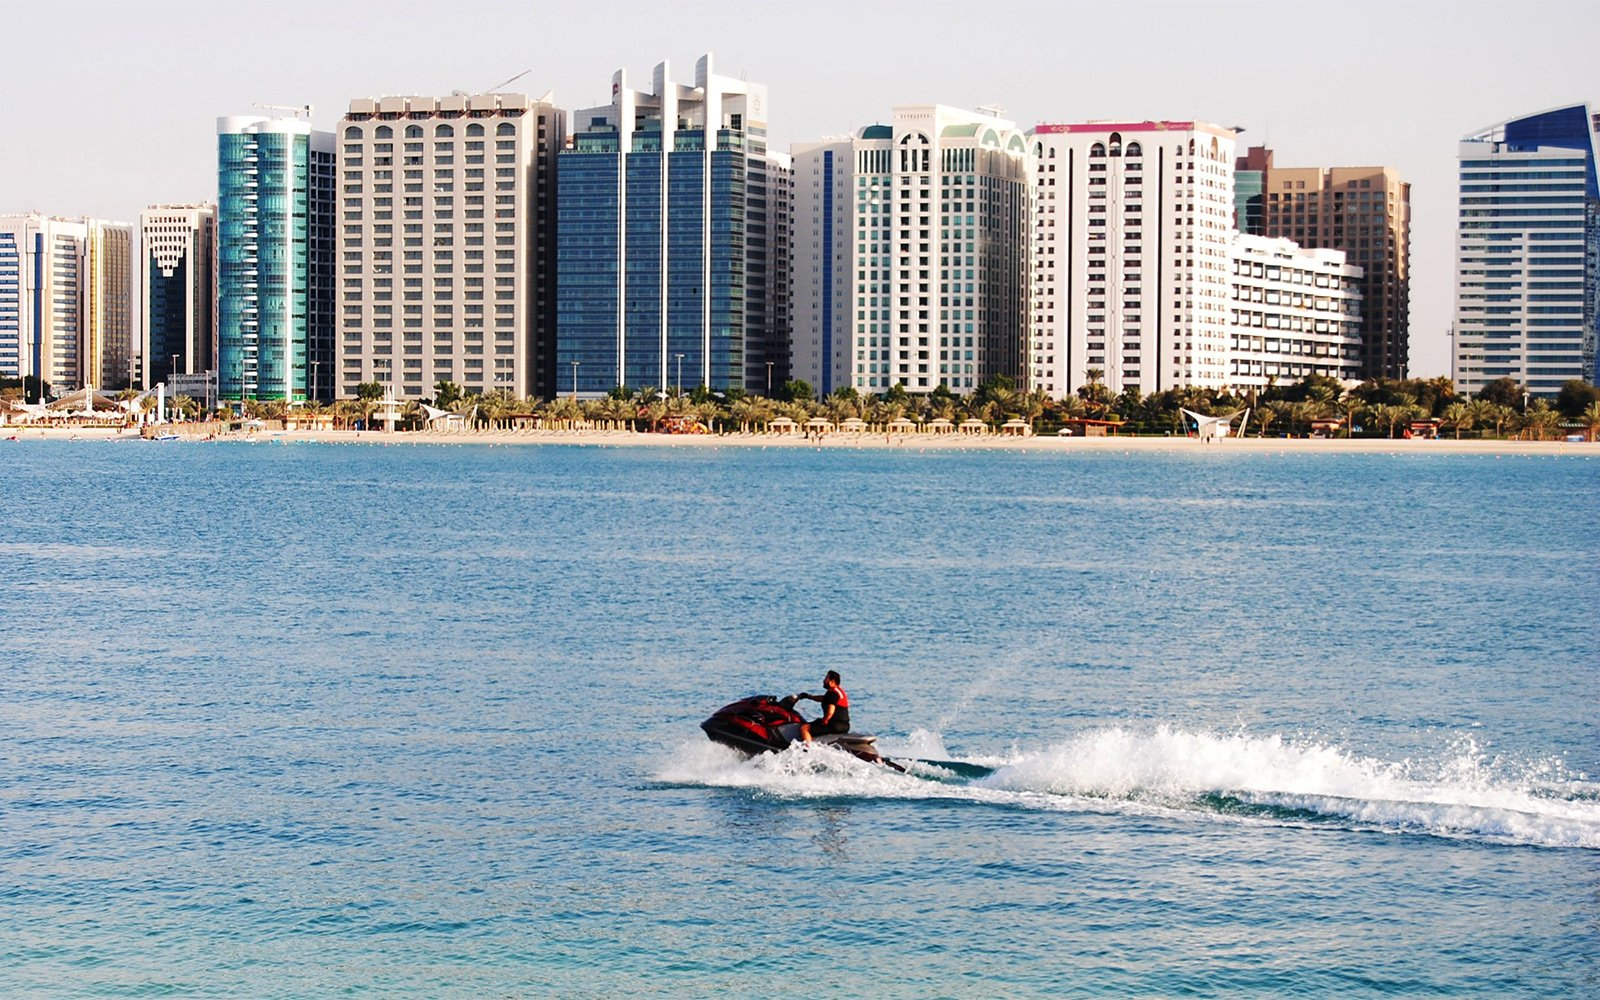 How to jump over the waves on a jet ski in Abu Dhabi